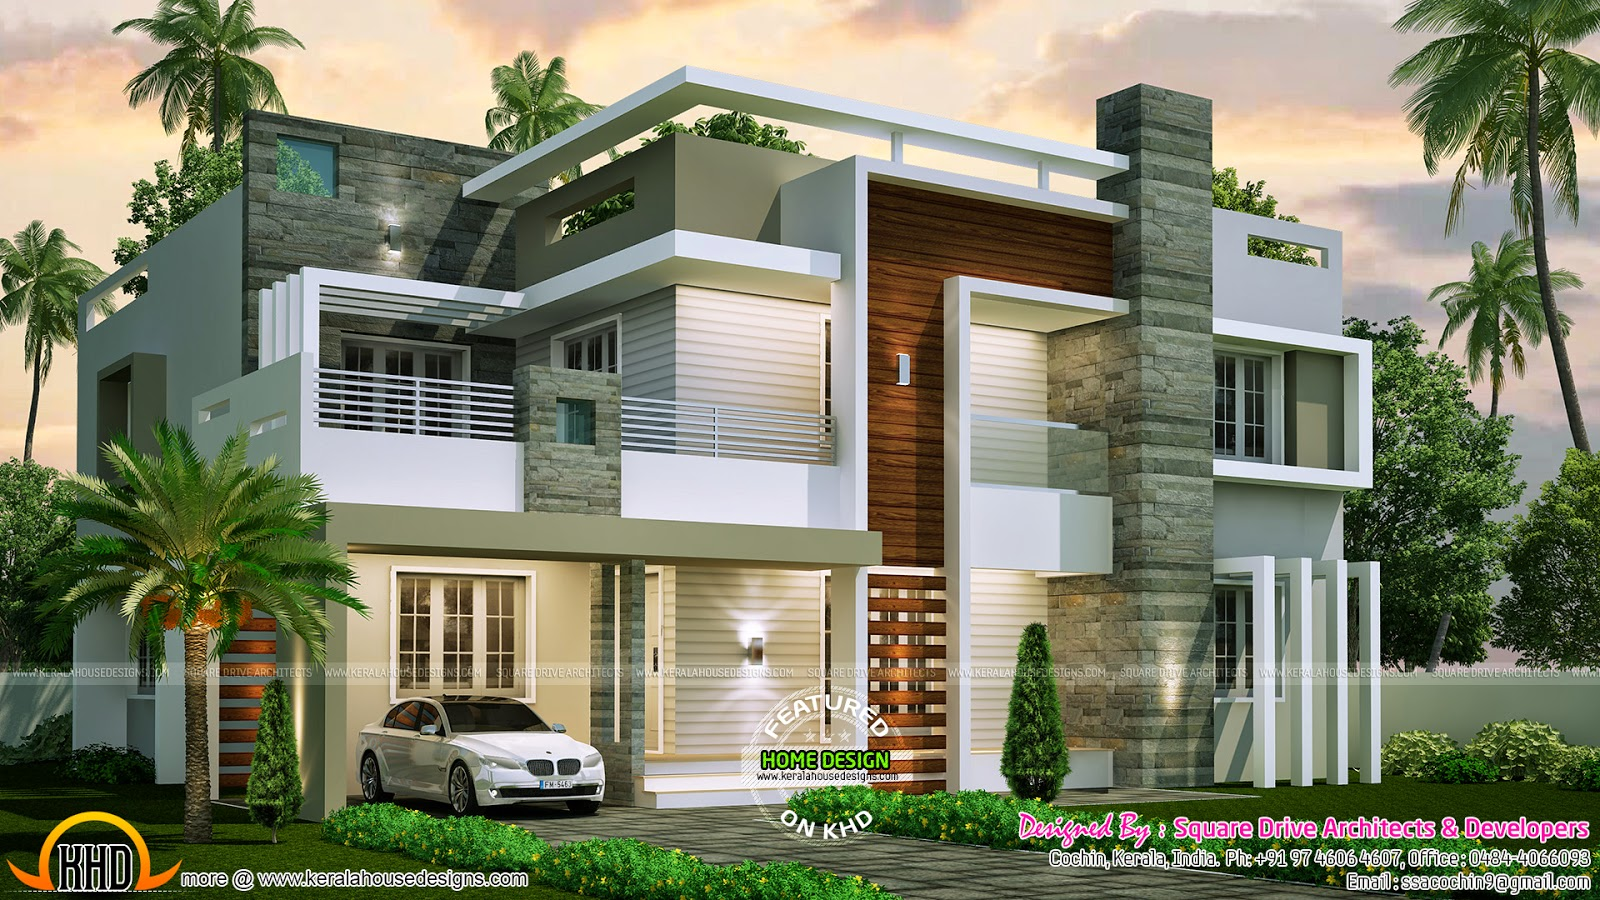 4 bedroom contemporary home design kerala home design On contemporary home plans